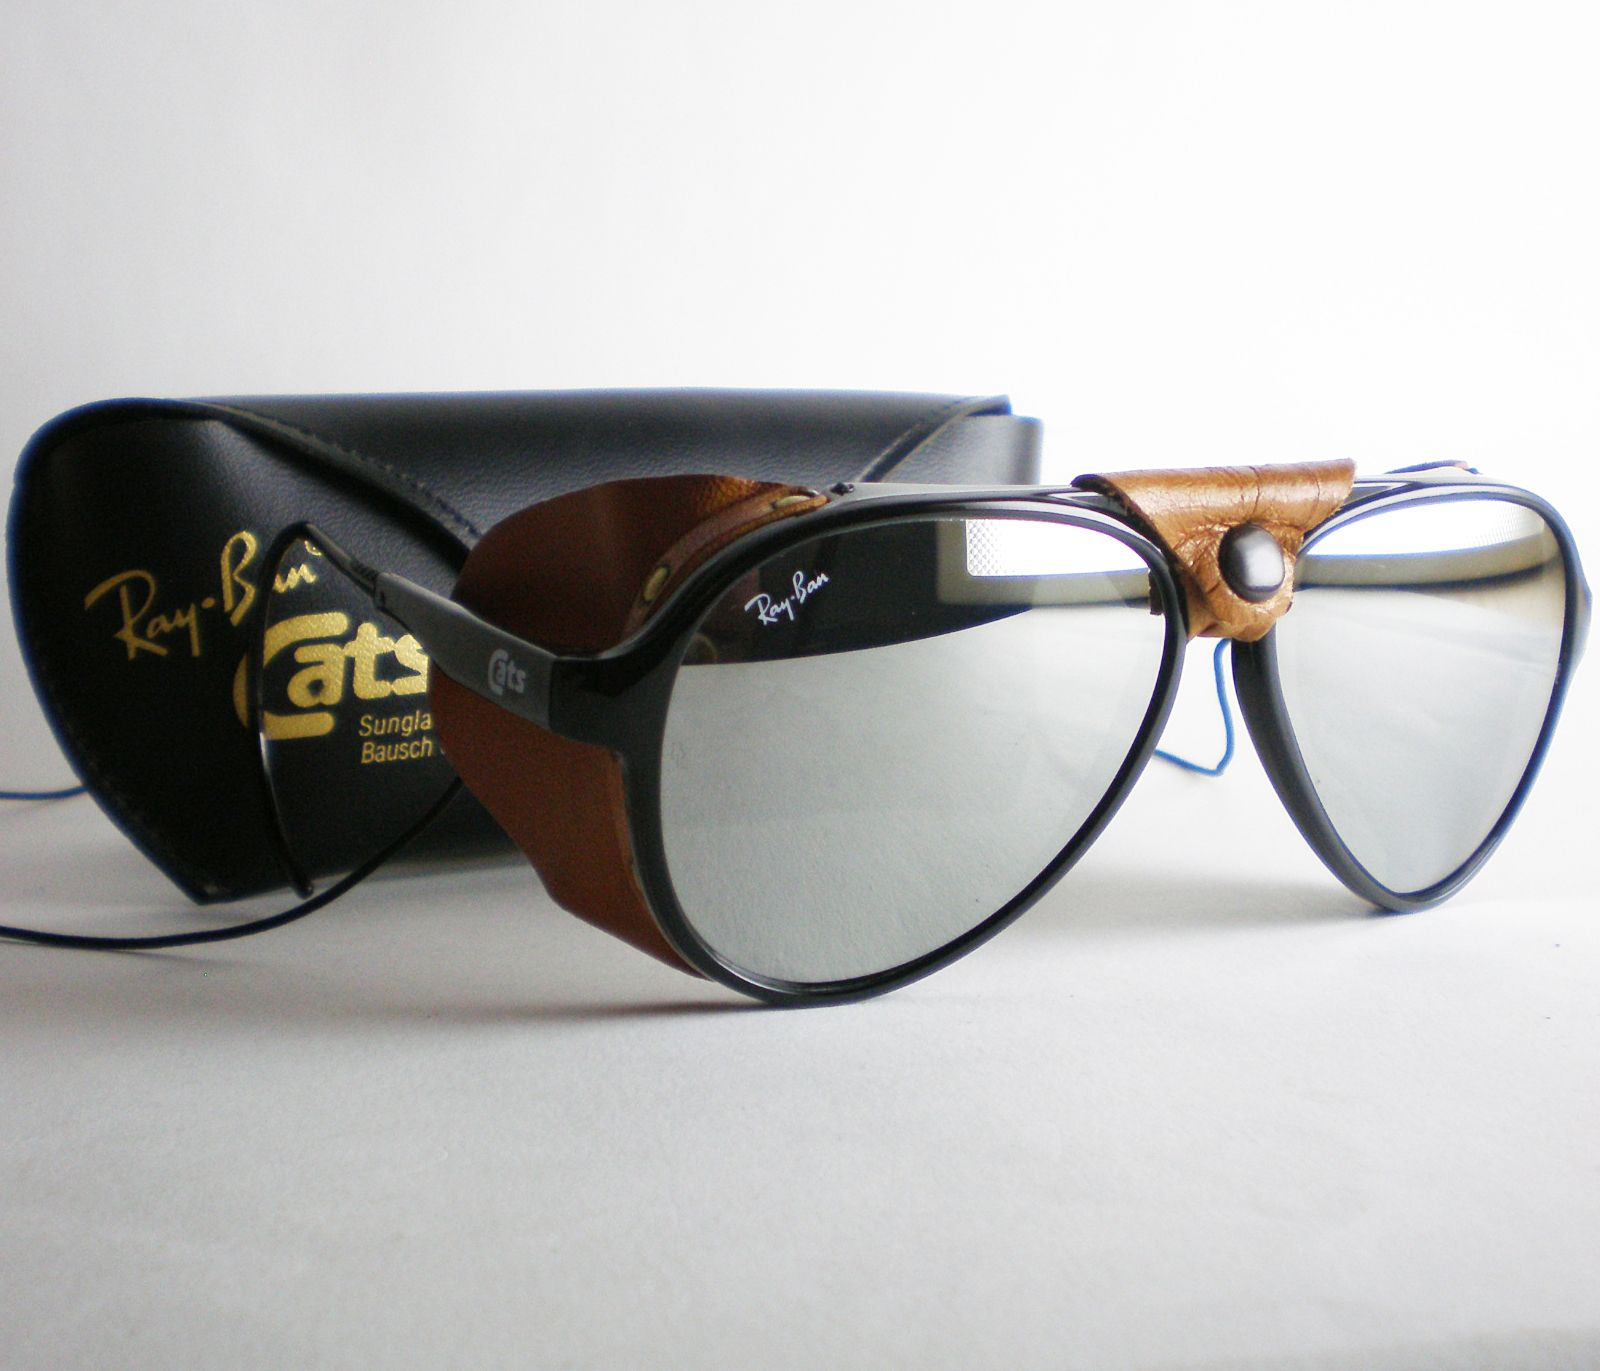 09e4ee650835a Vintage Ray Ban CATS 8000 MIRRORED Sunglasses aviator side shield leathers  black